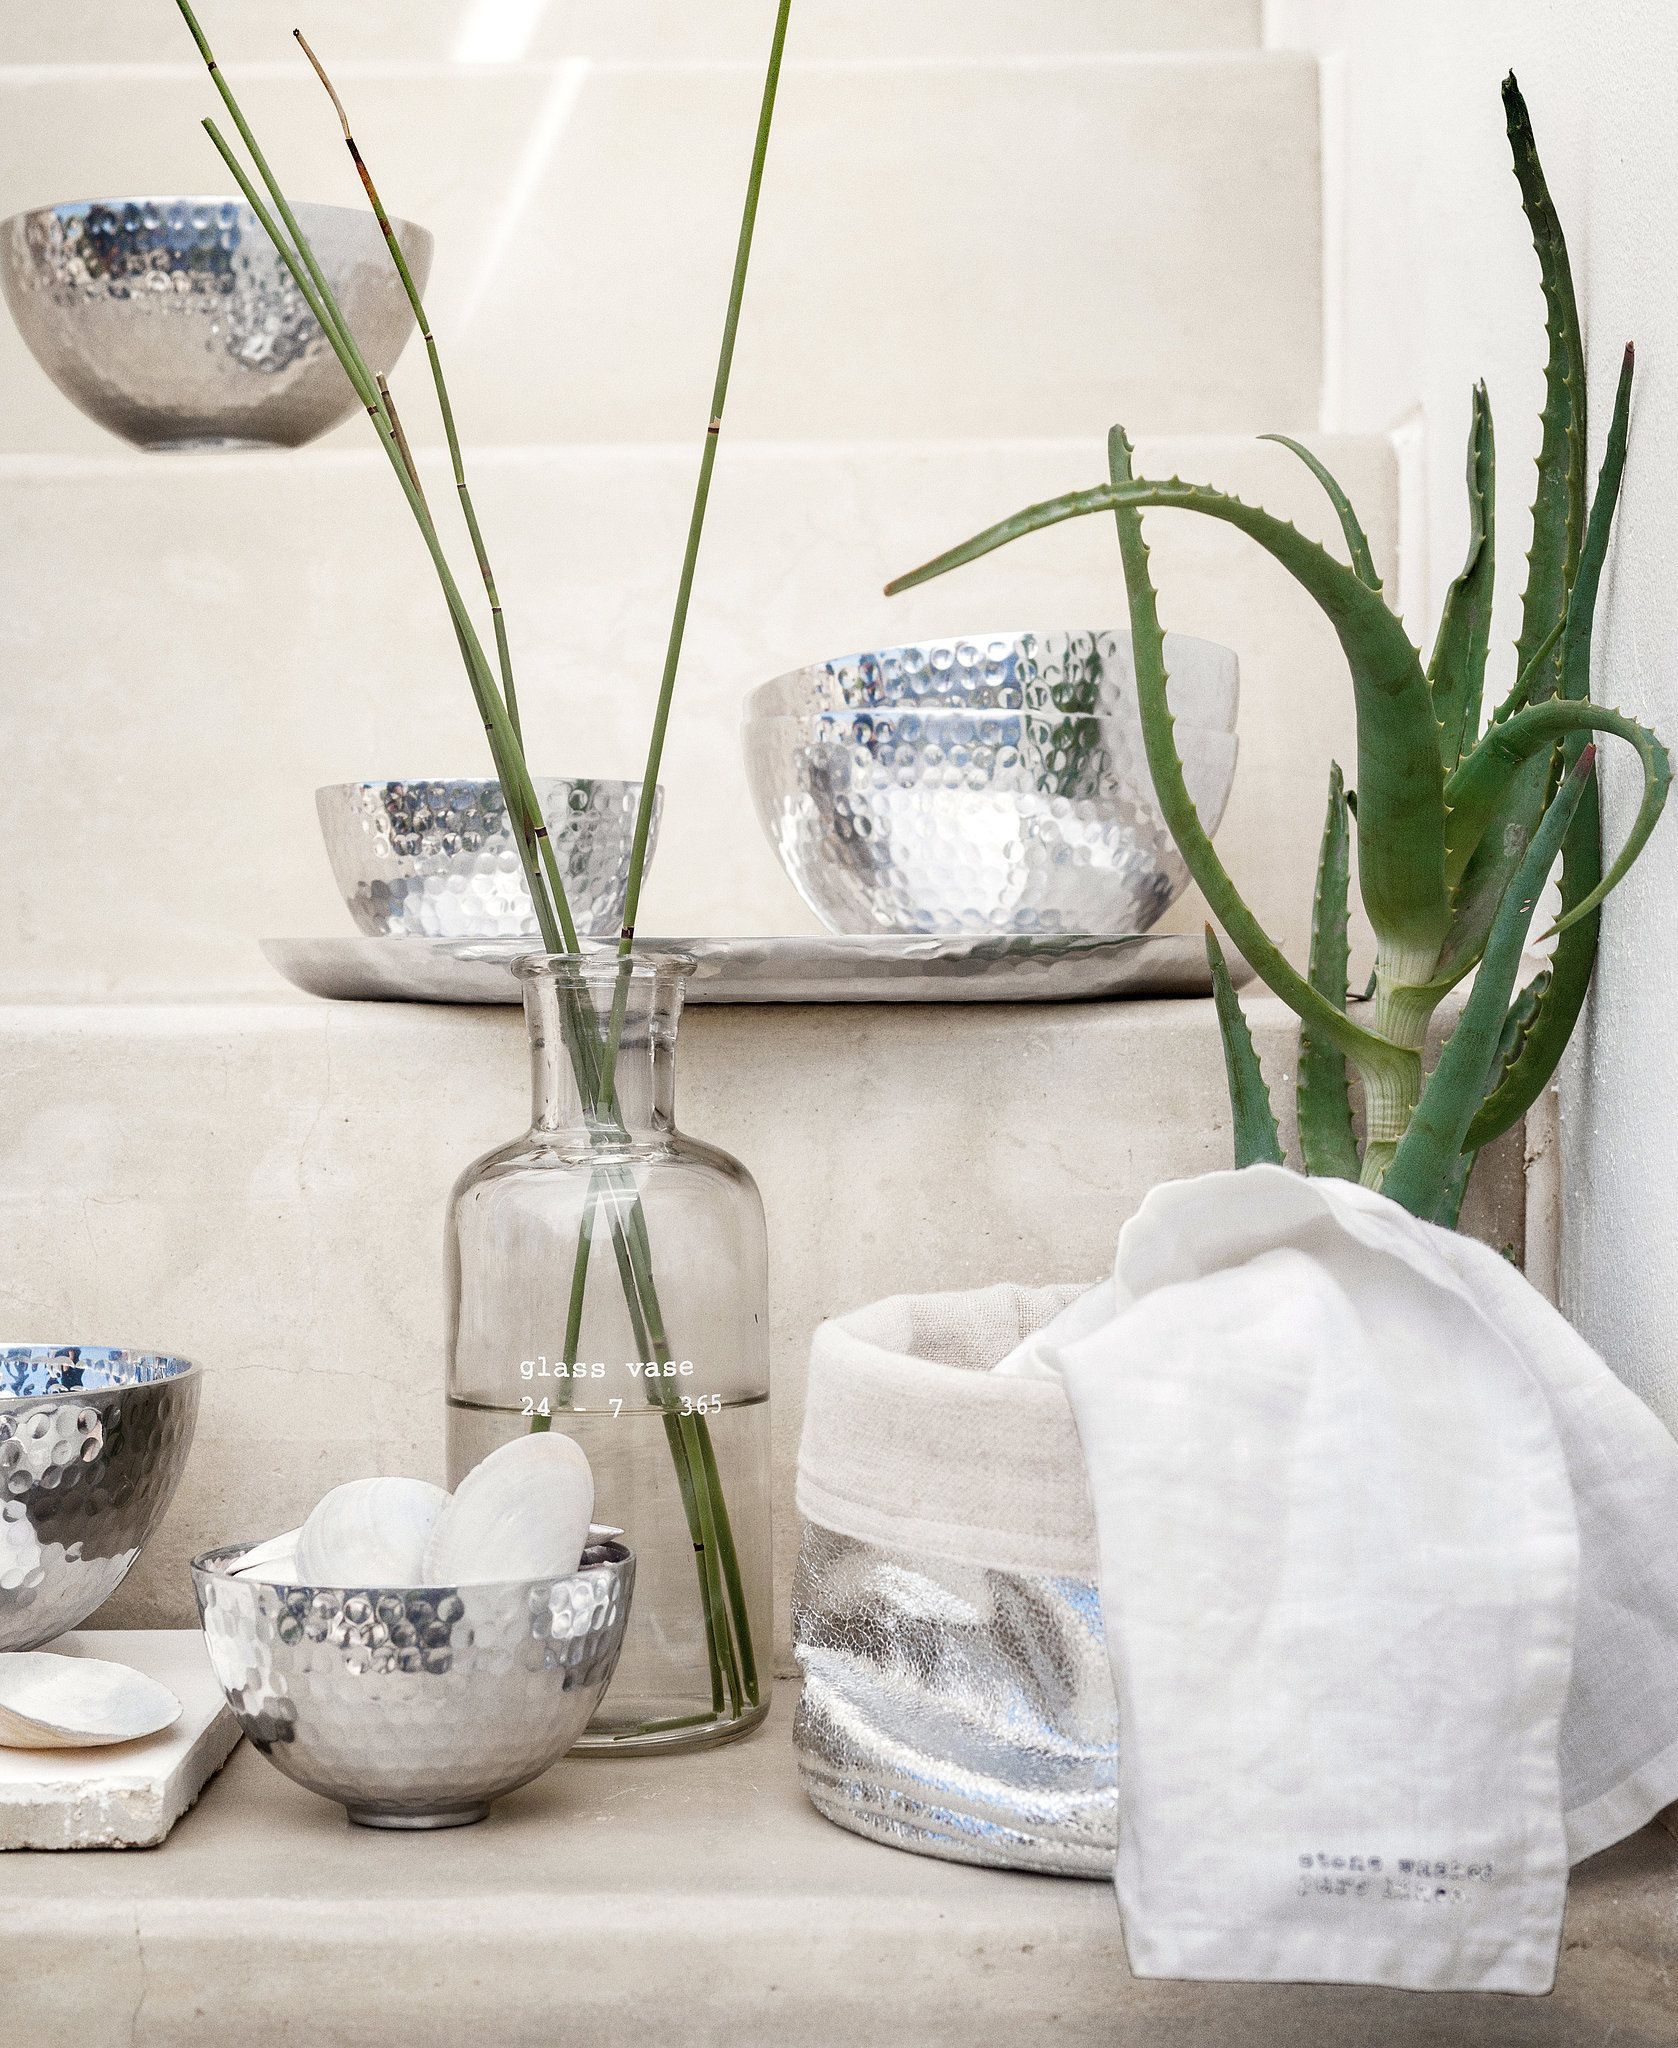 H M S Spring Collection Is Blooming With Budget Friendly Decor Budget Friendly Decor H M Home Spring Home